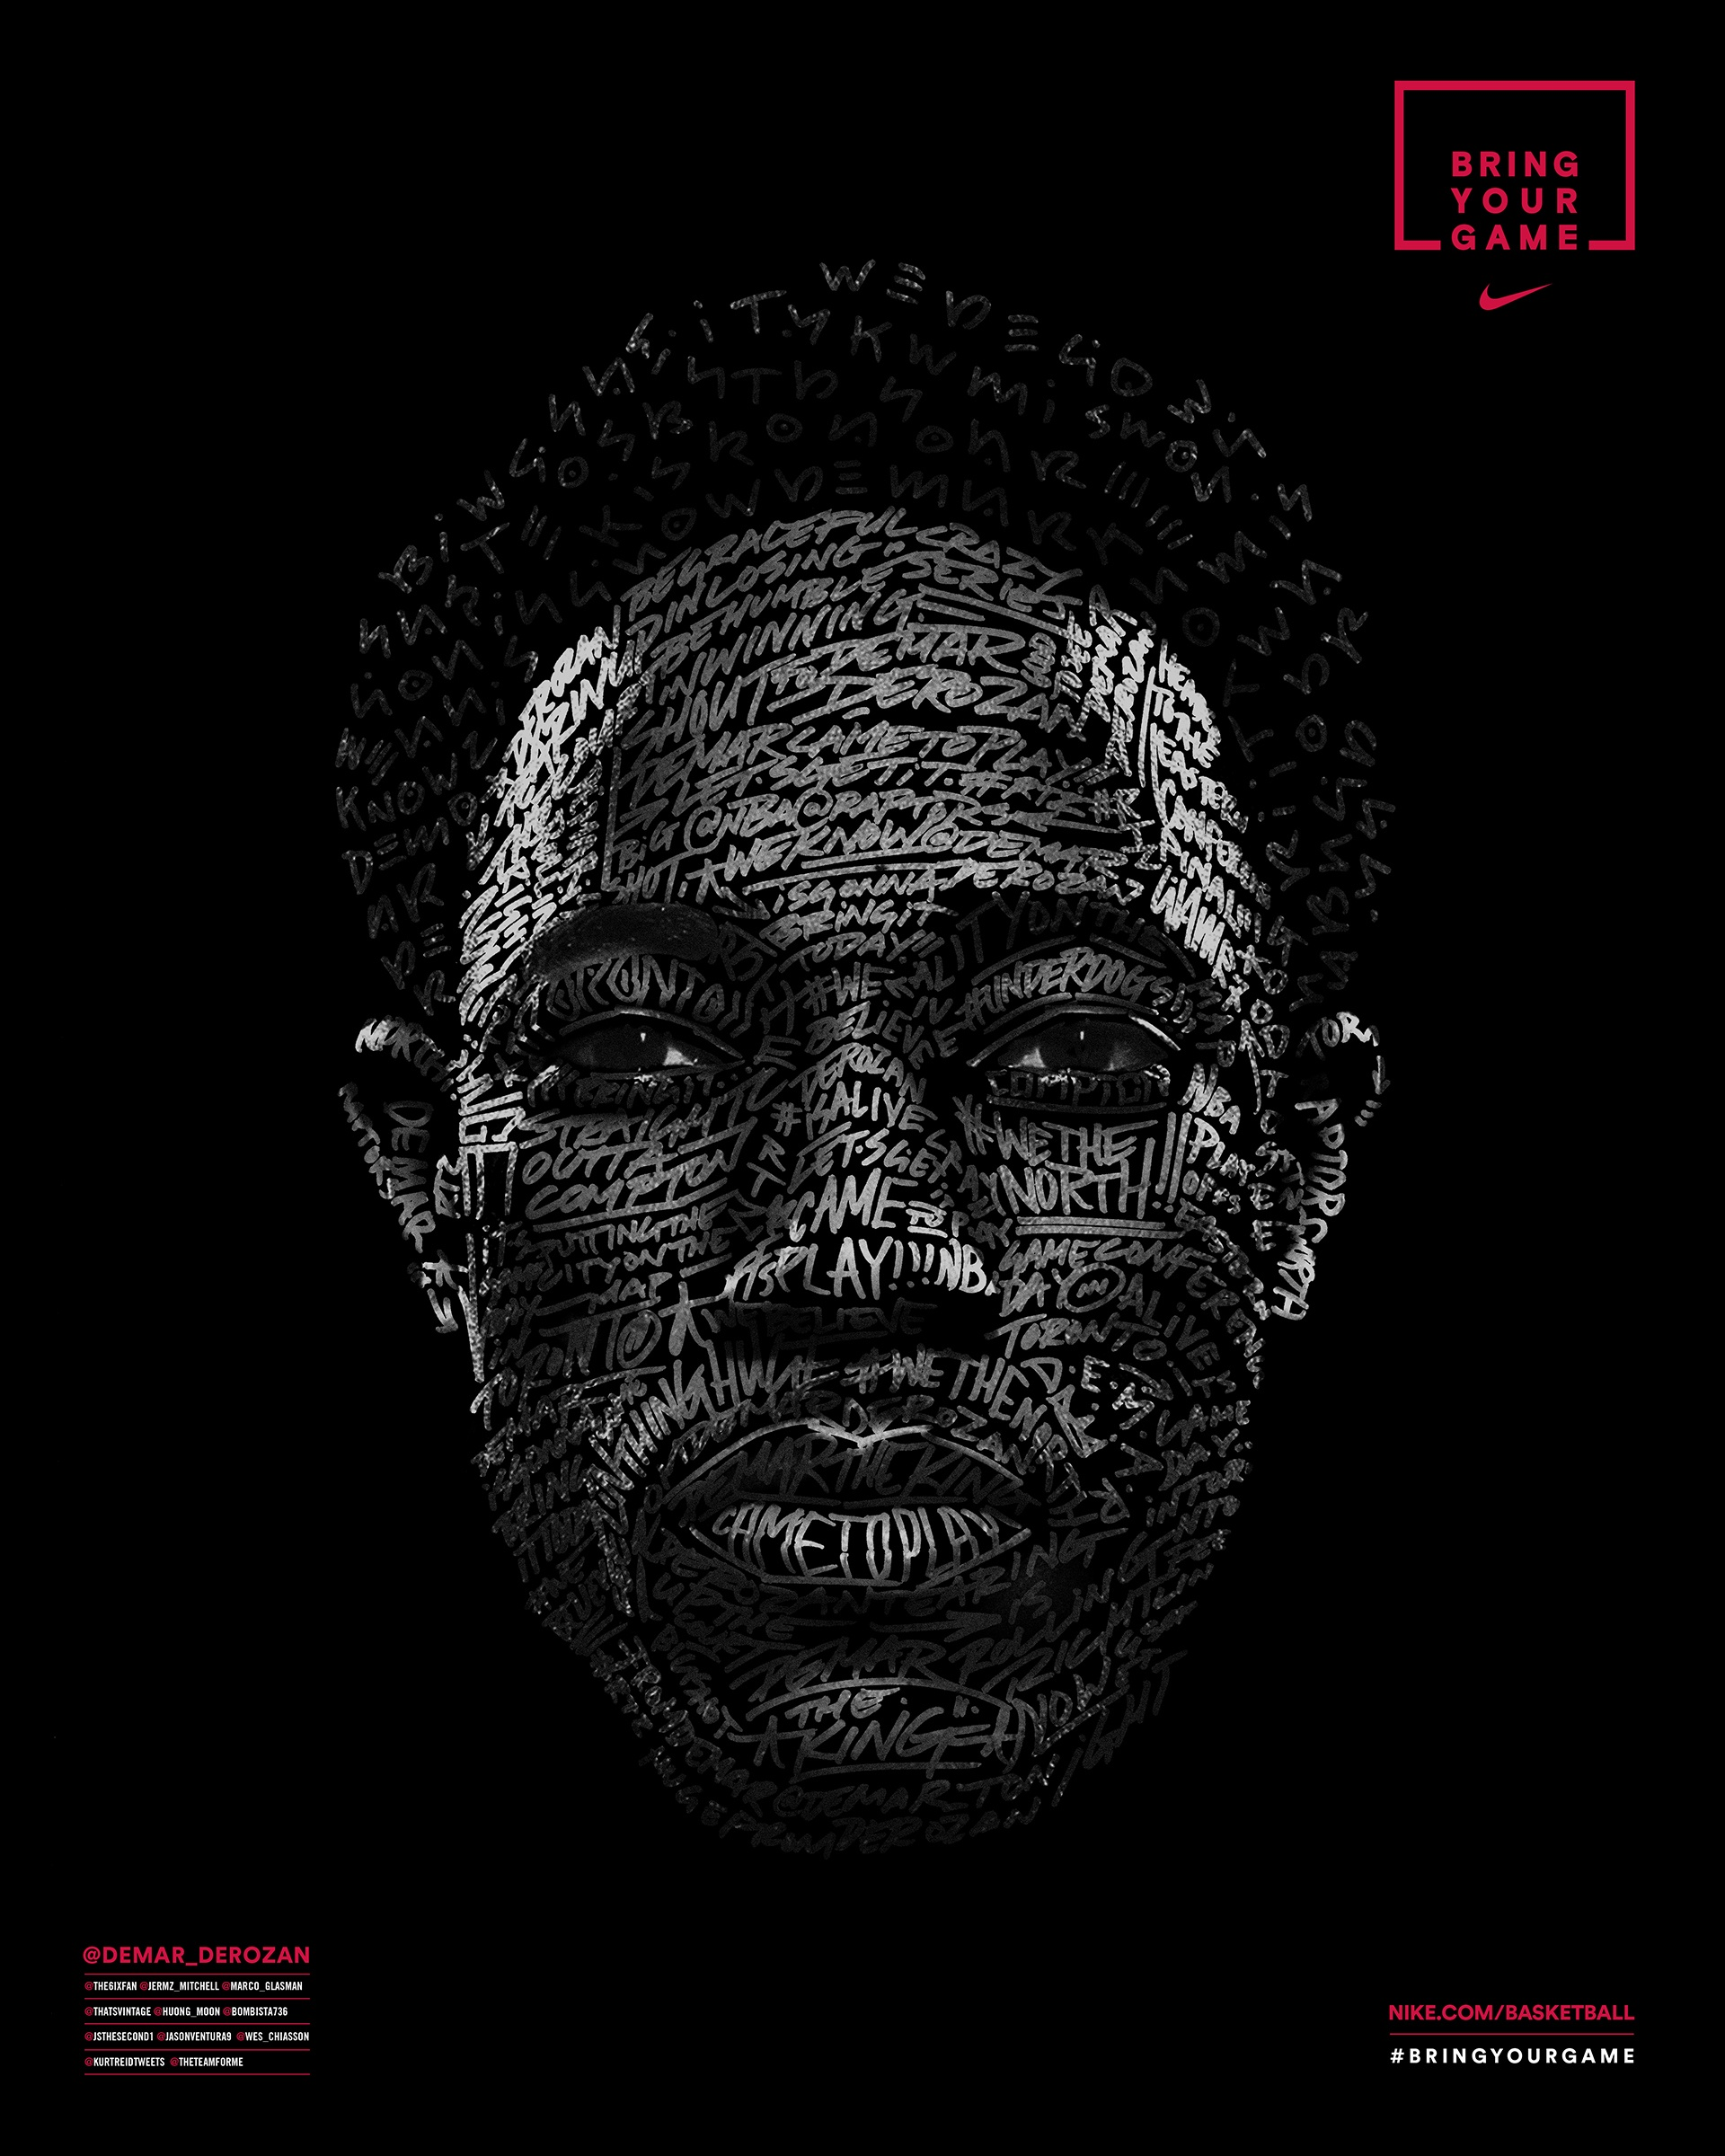 Thumbnail for Nike Face of the Fans - DeMar DeRozan